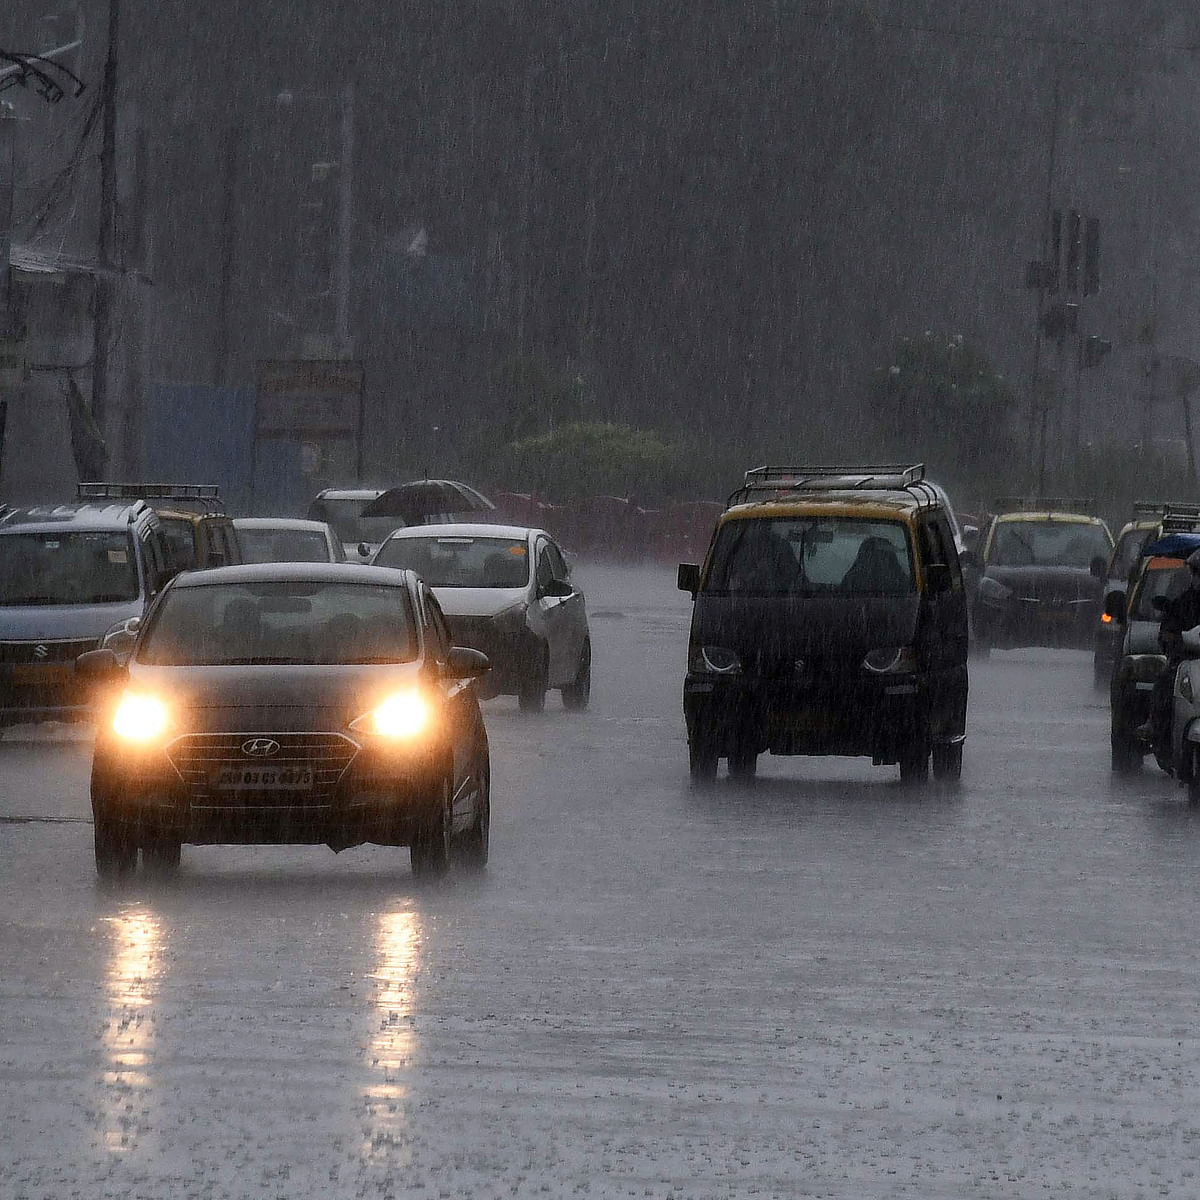 Mumbai weather update: IMD issues yellow alert for today, predicts moderate to heavy rainfall